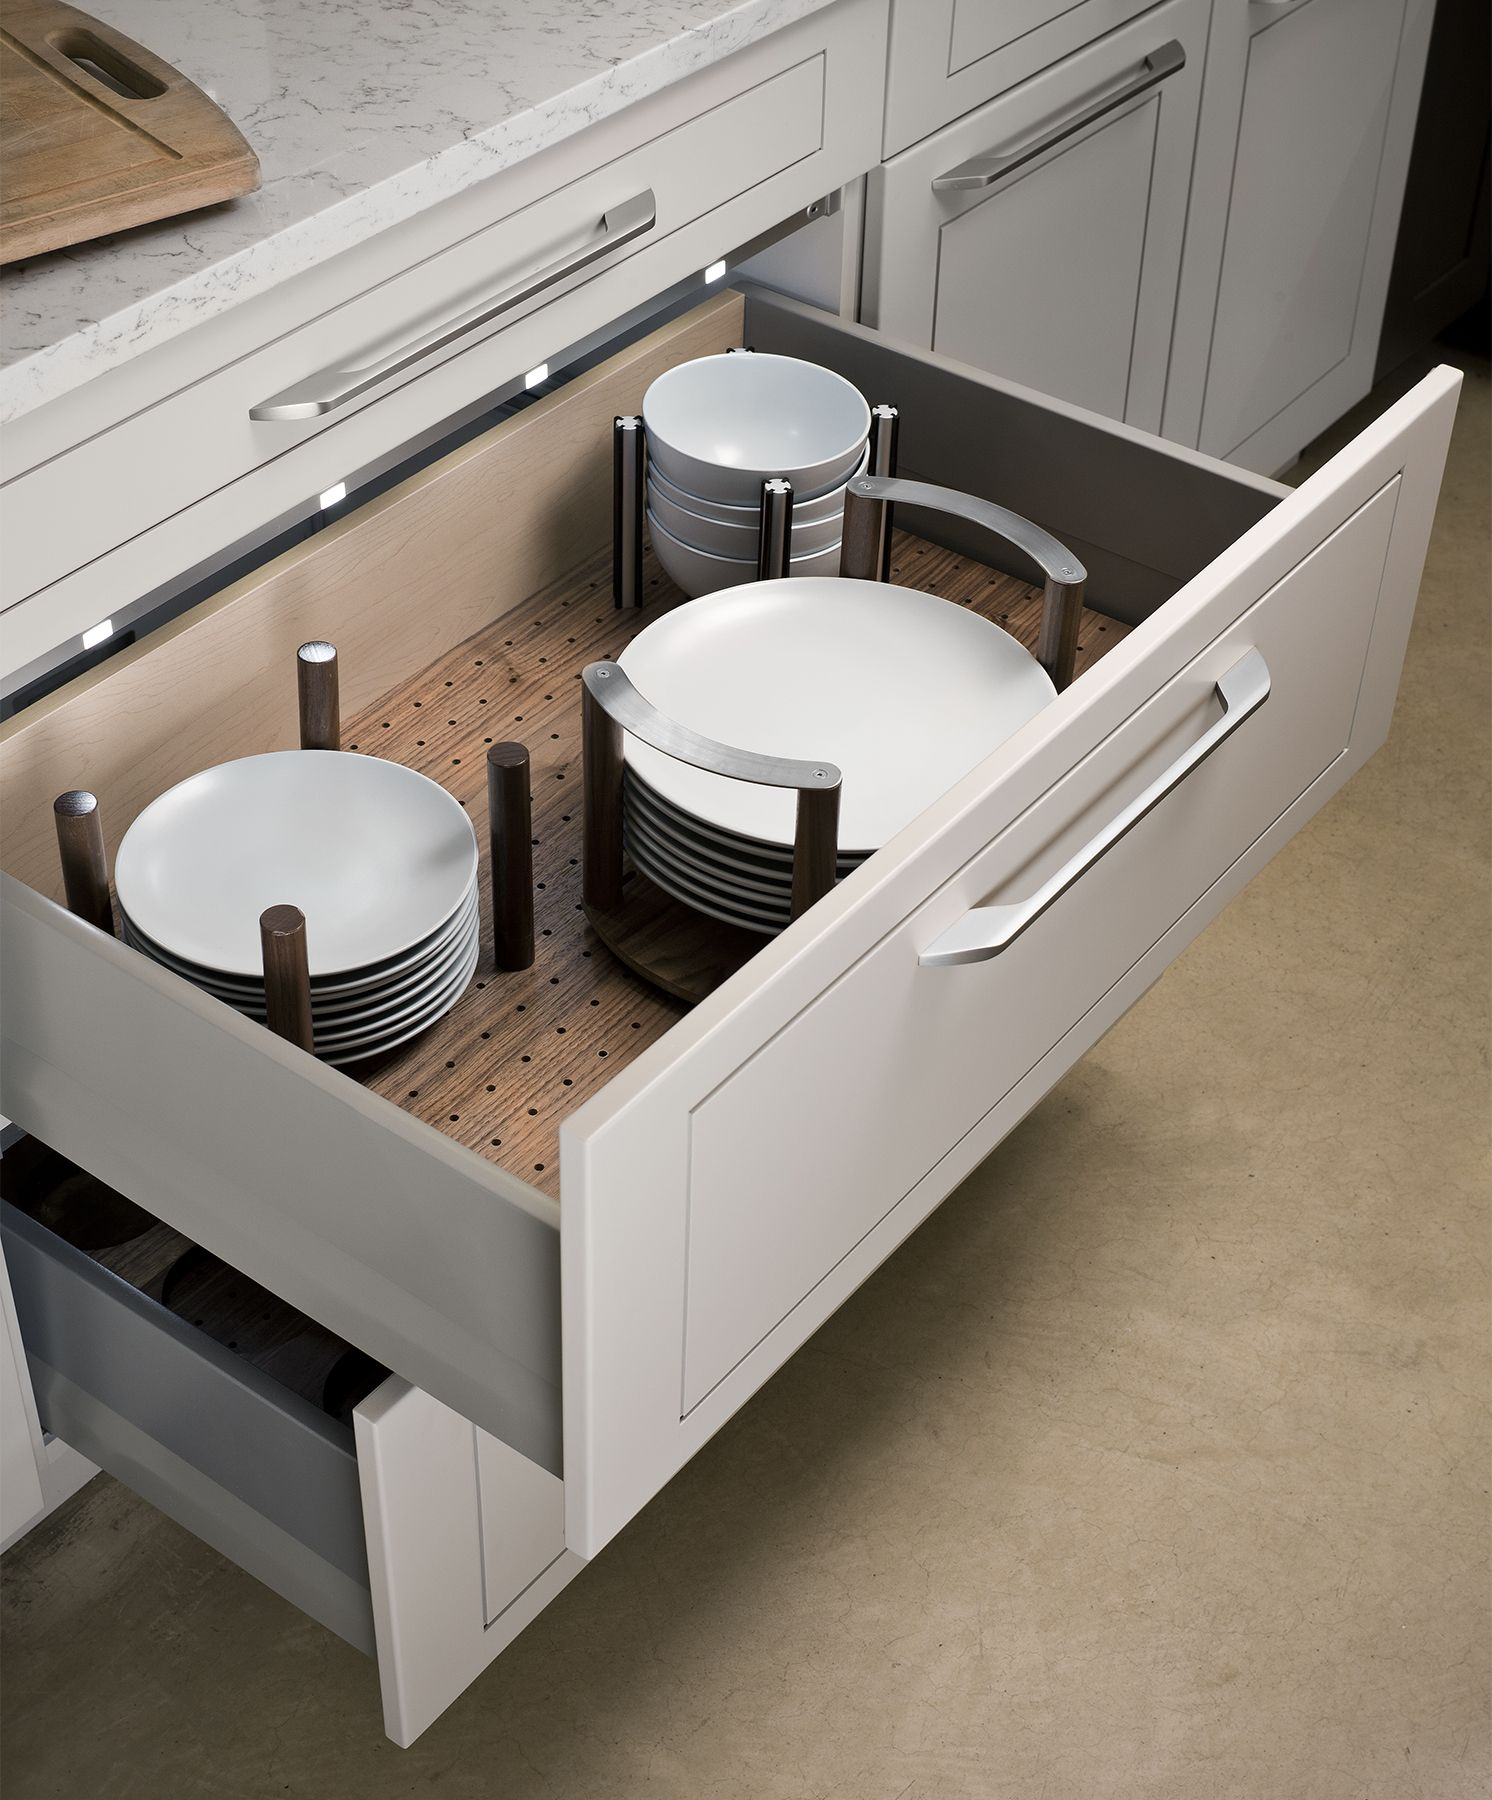 Dining Room Storage Ideas To Keep Your Scheme Clutter Free: Dish Drawer Pegs, Important If No Upper Cabinets, Possibly